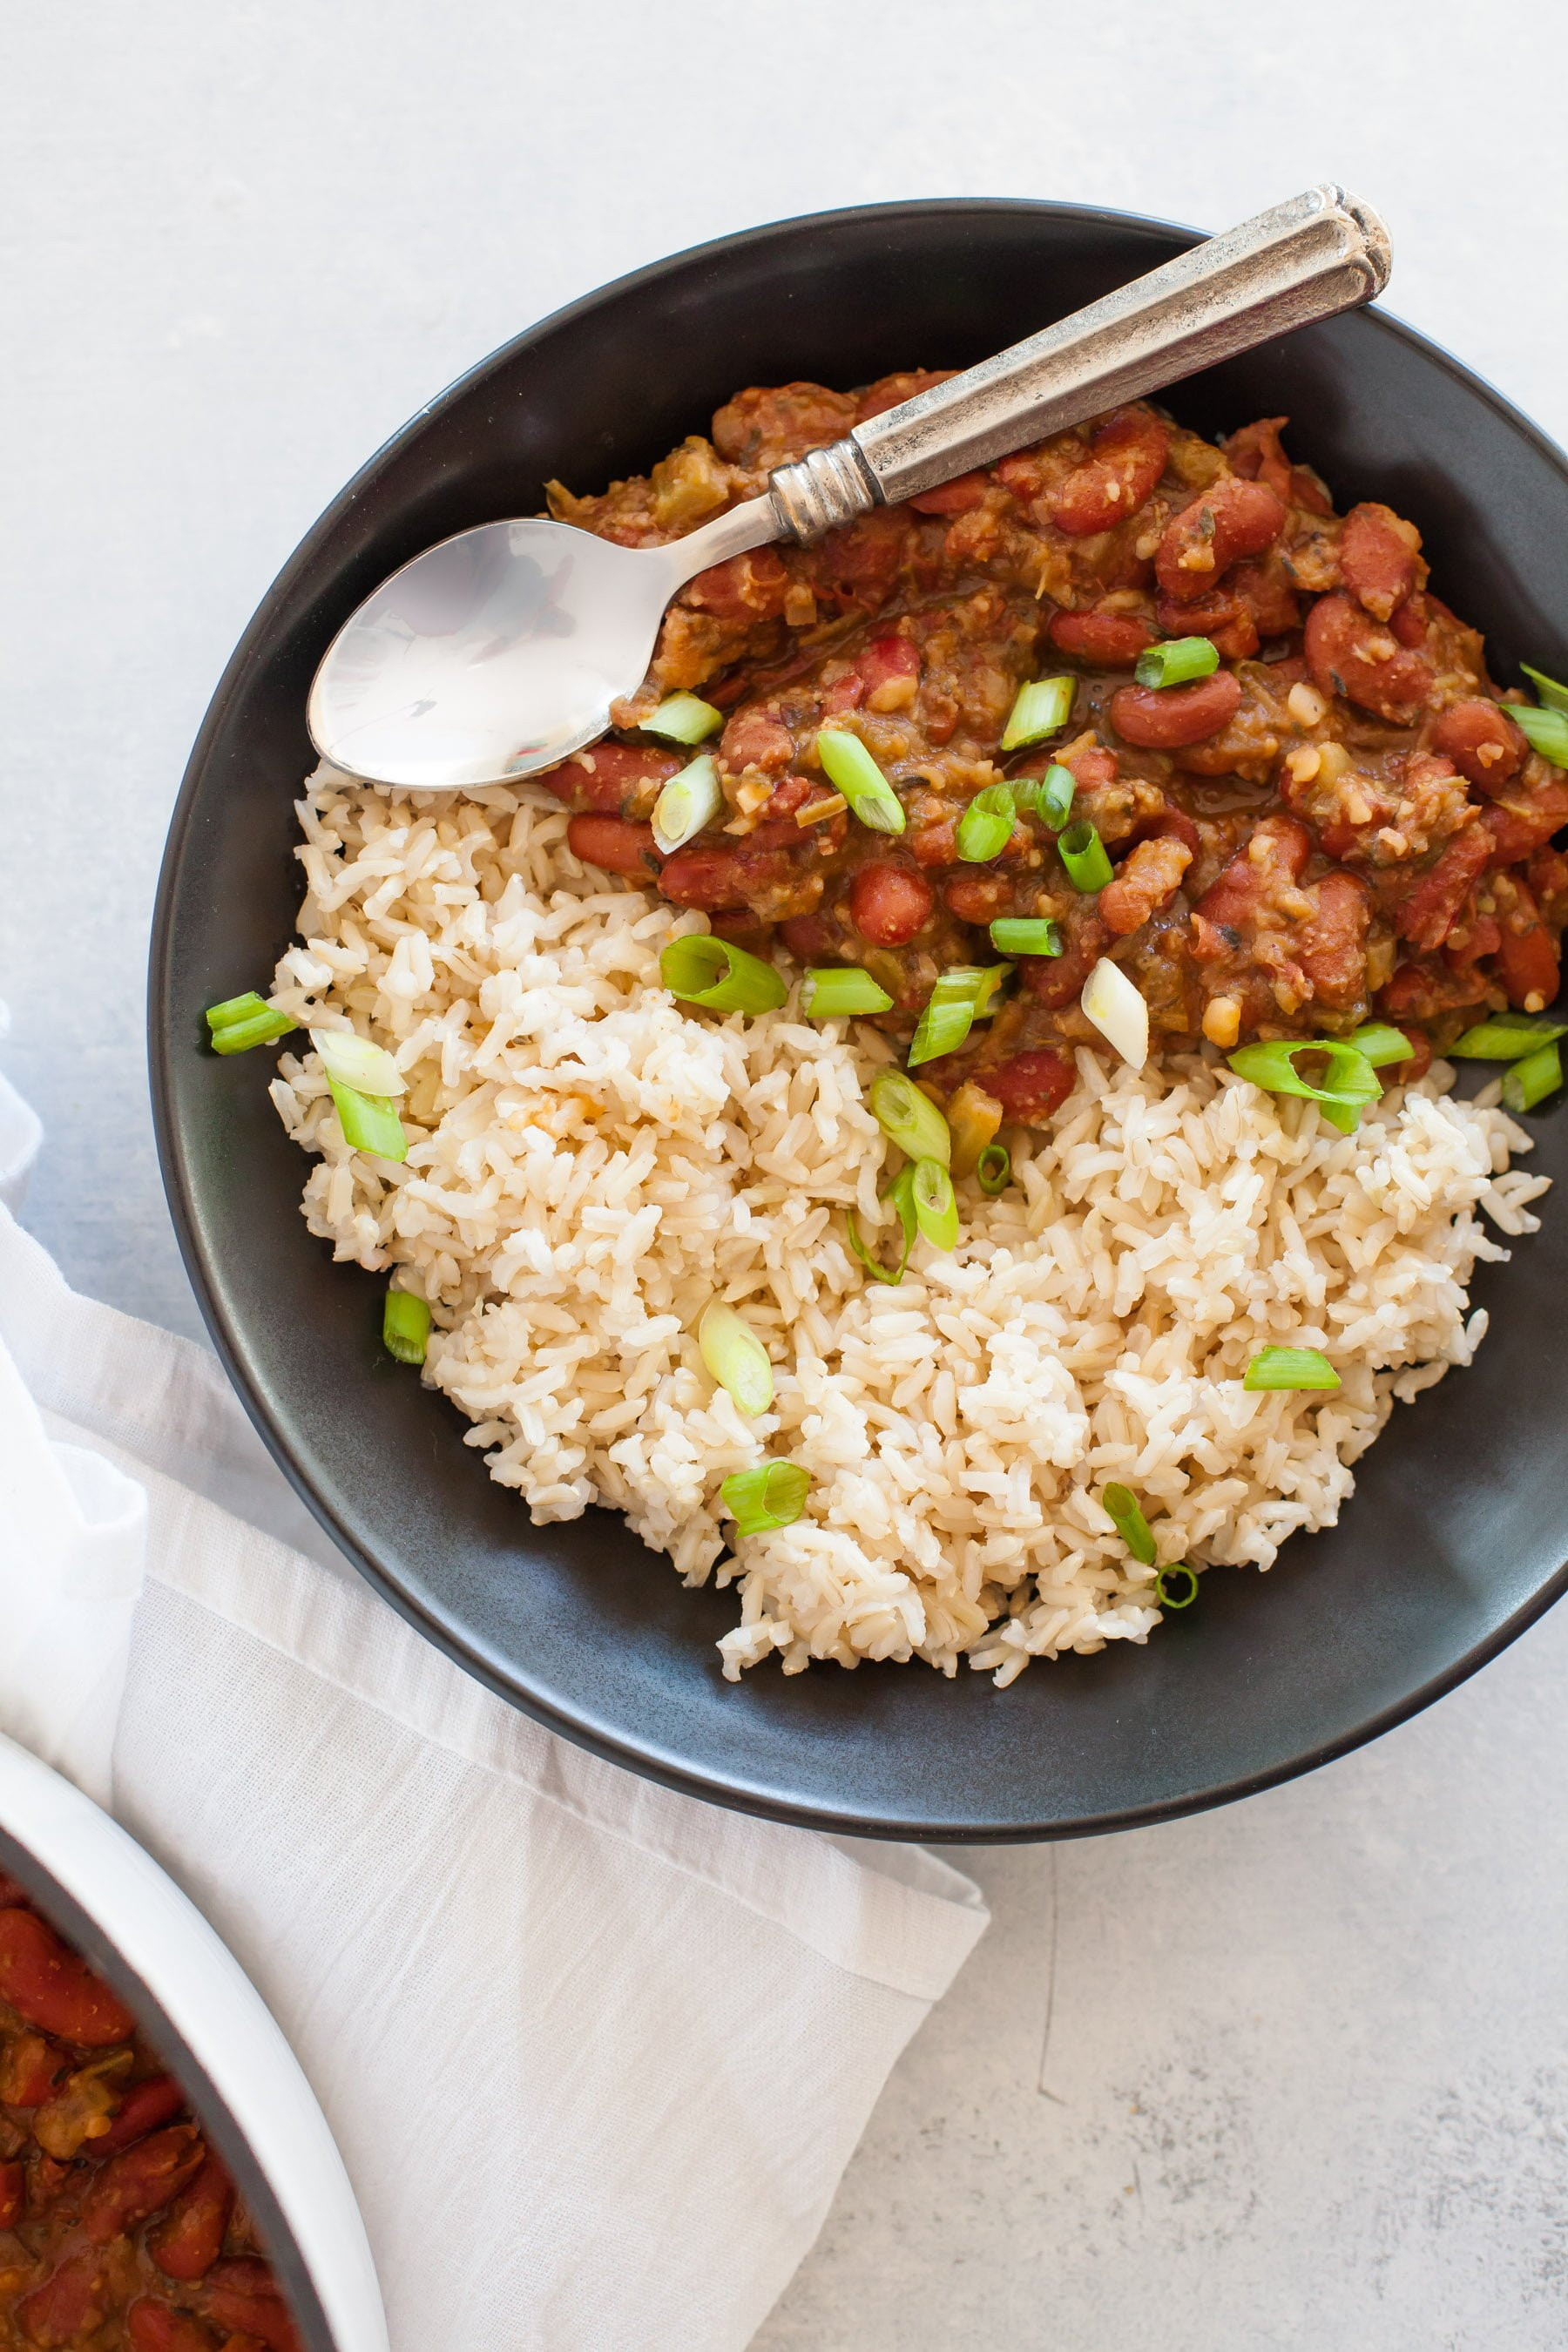 Vegan Recipes With Rice  Vegan Red Beans and Rice Wholefully